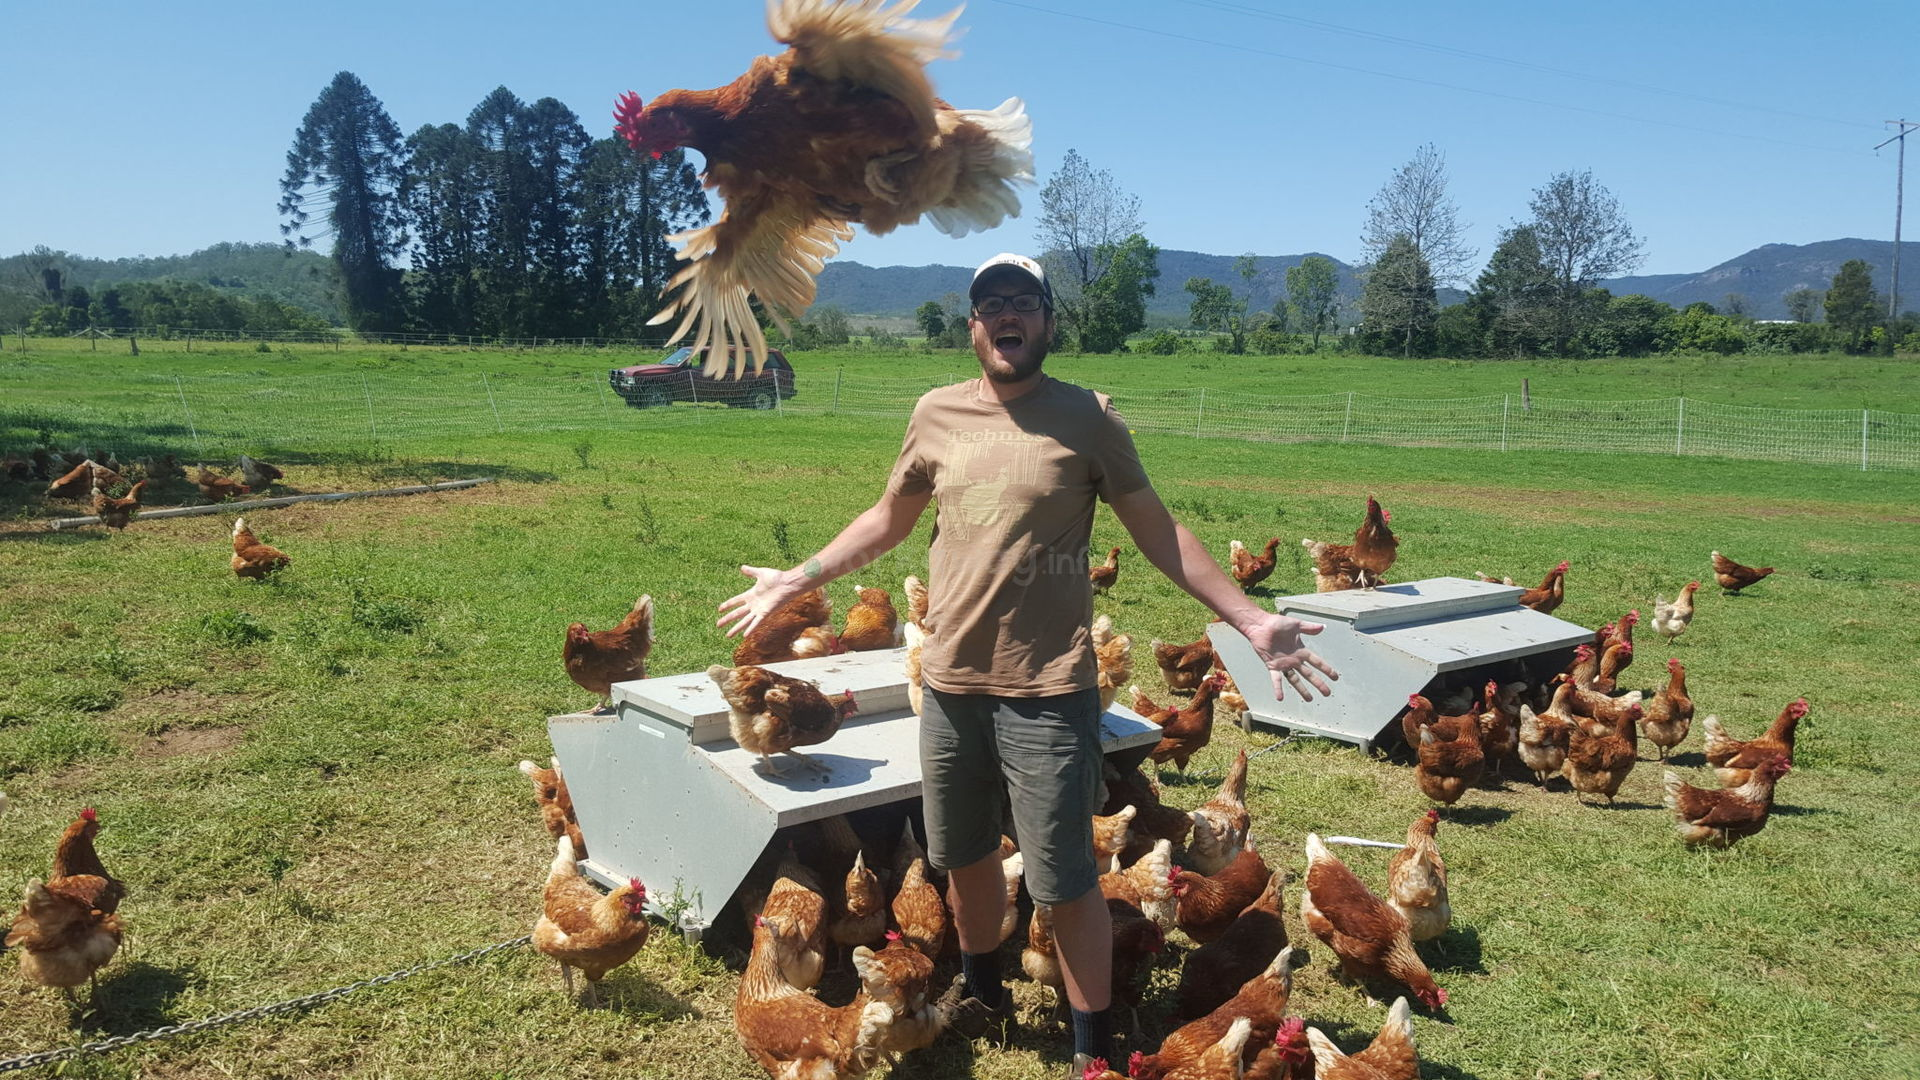 workawayer with chickens